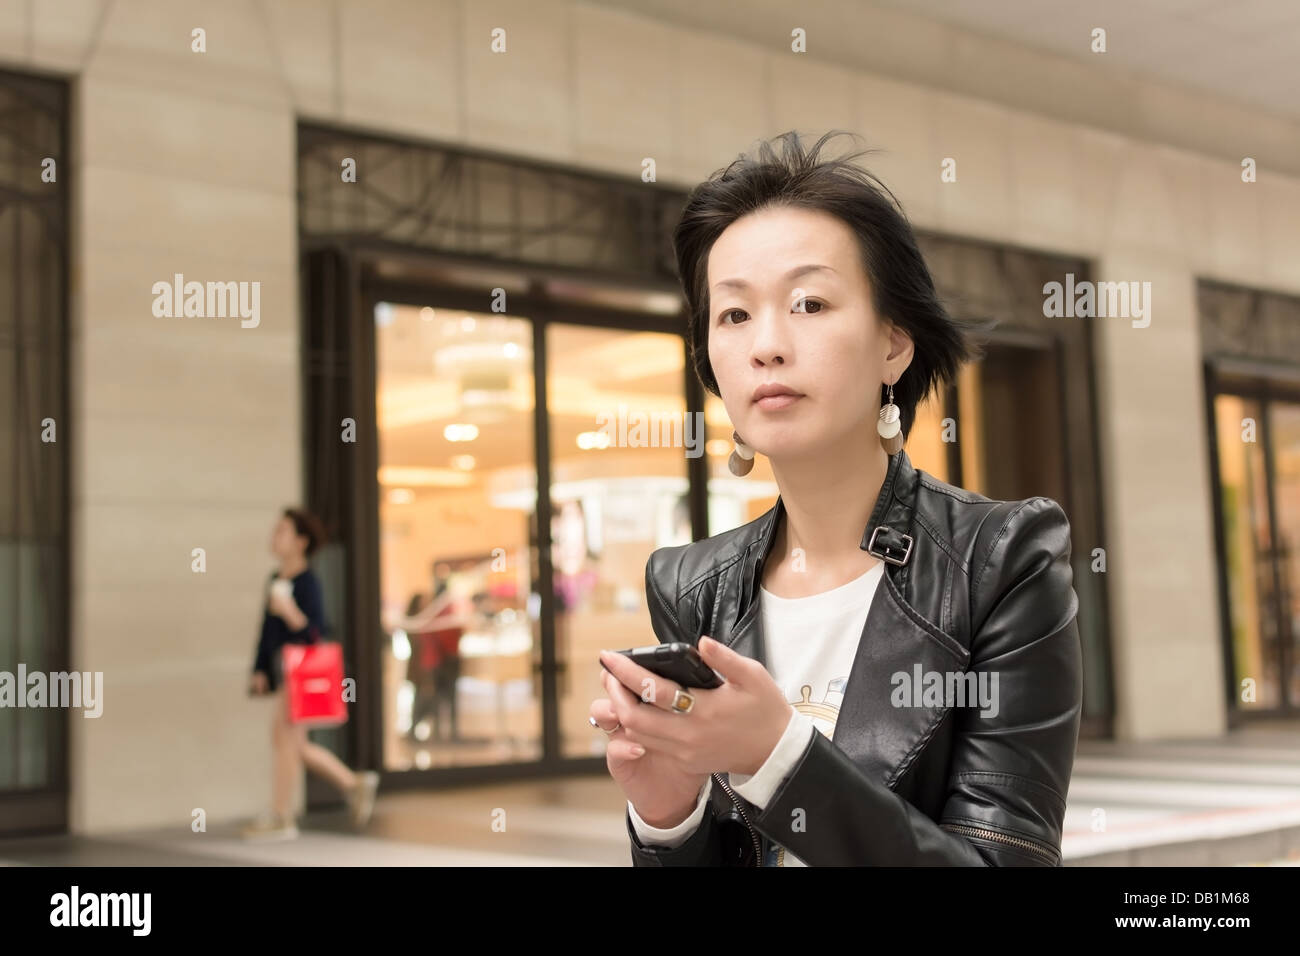 asian mature woman stock photo: 58430128 - alamy